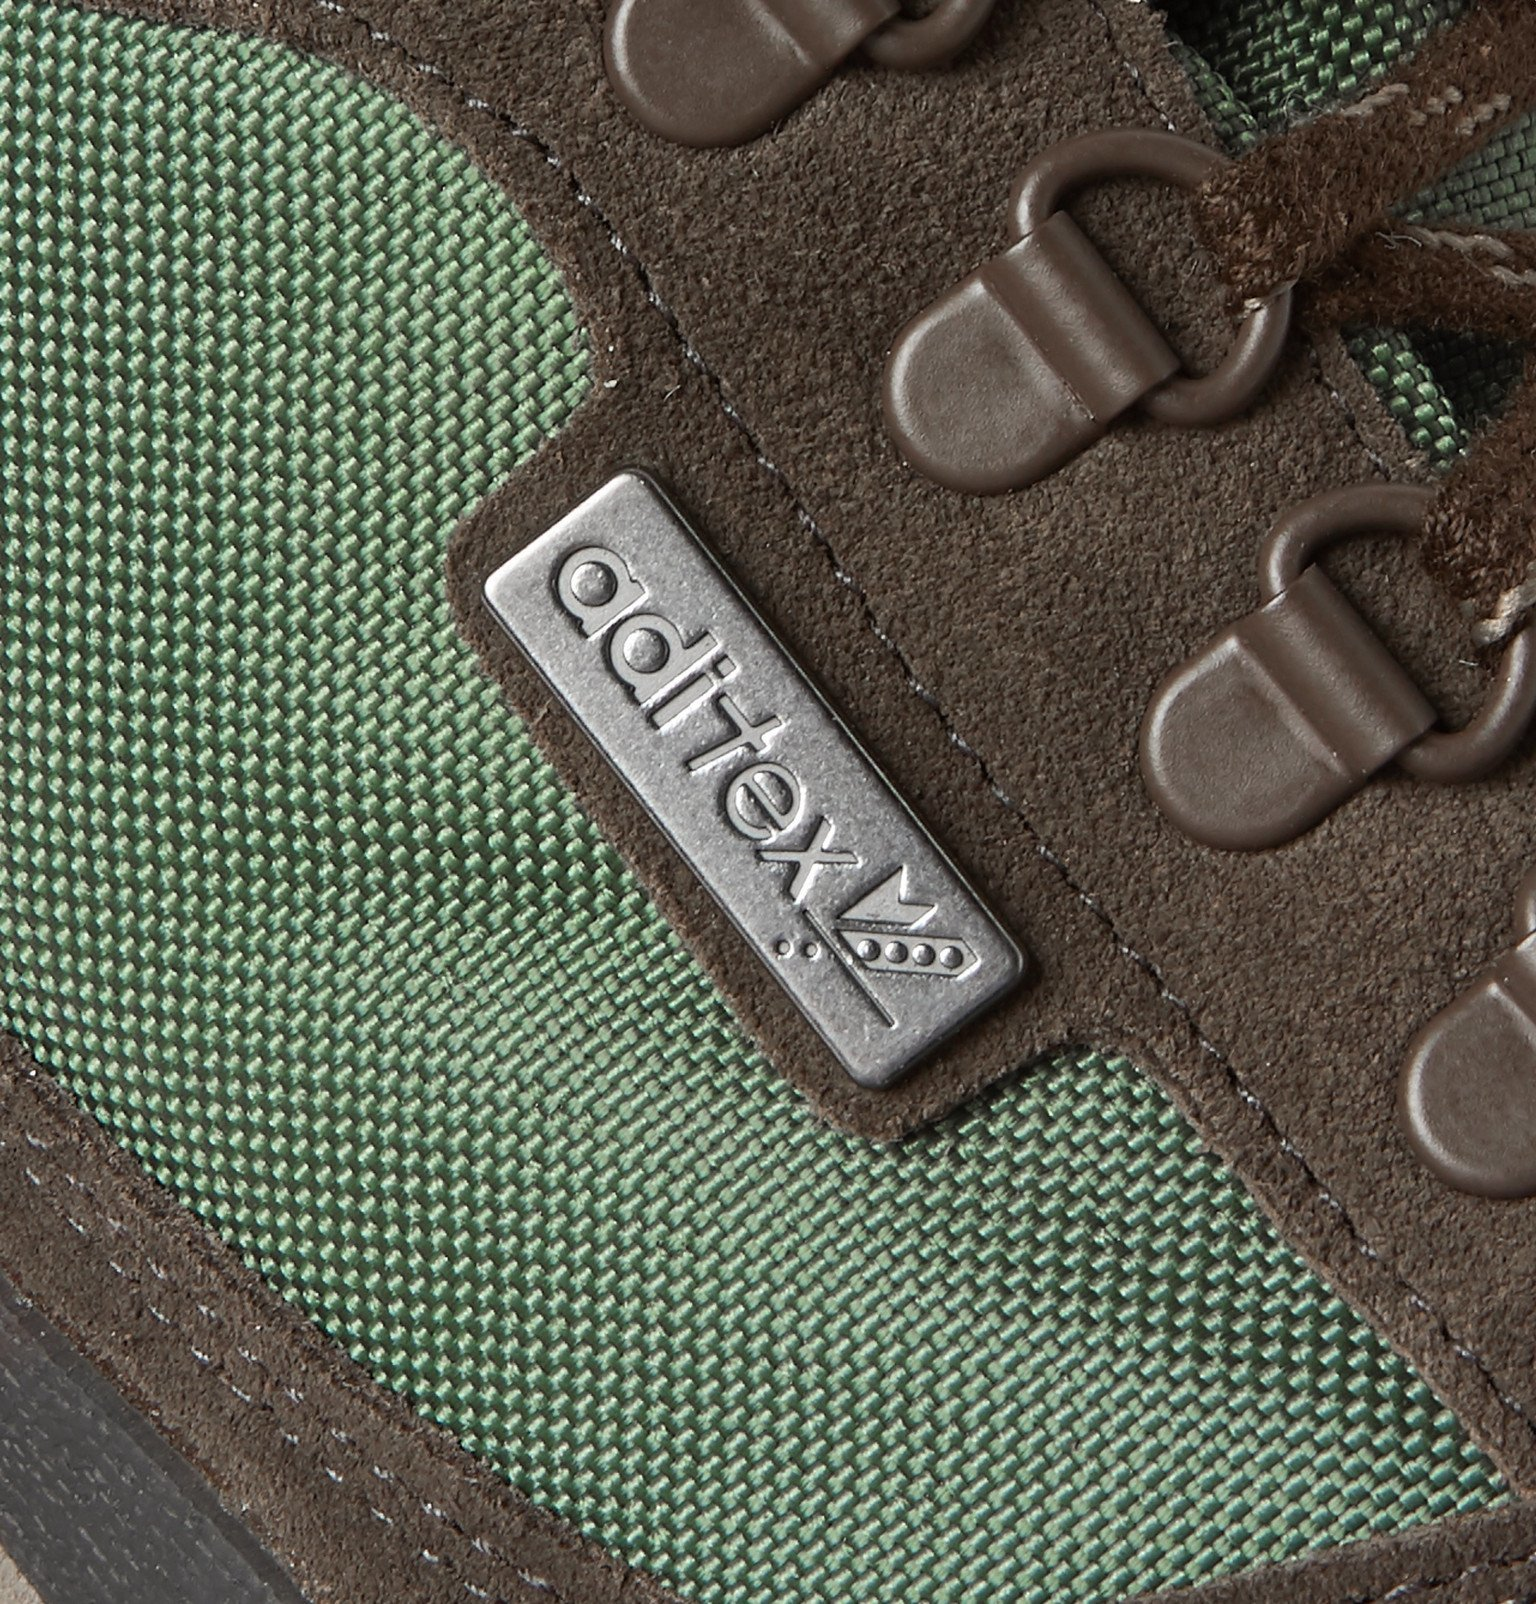 adidas Consortium - Winterhill Spezial Suede and Mesh Sneakers - Green